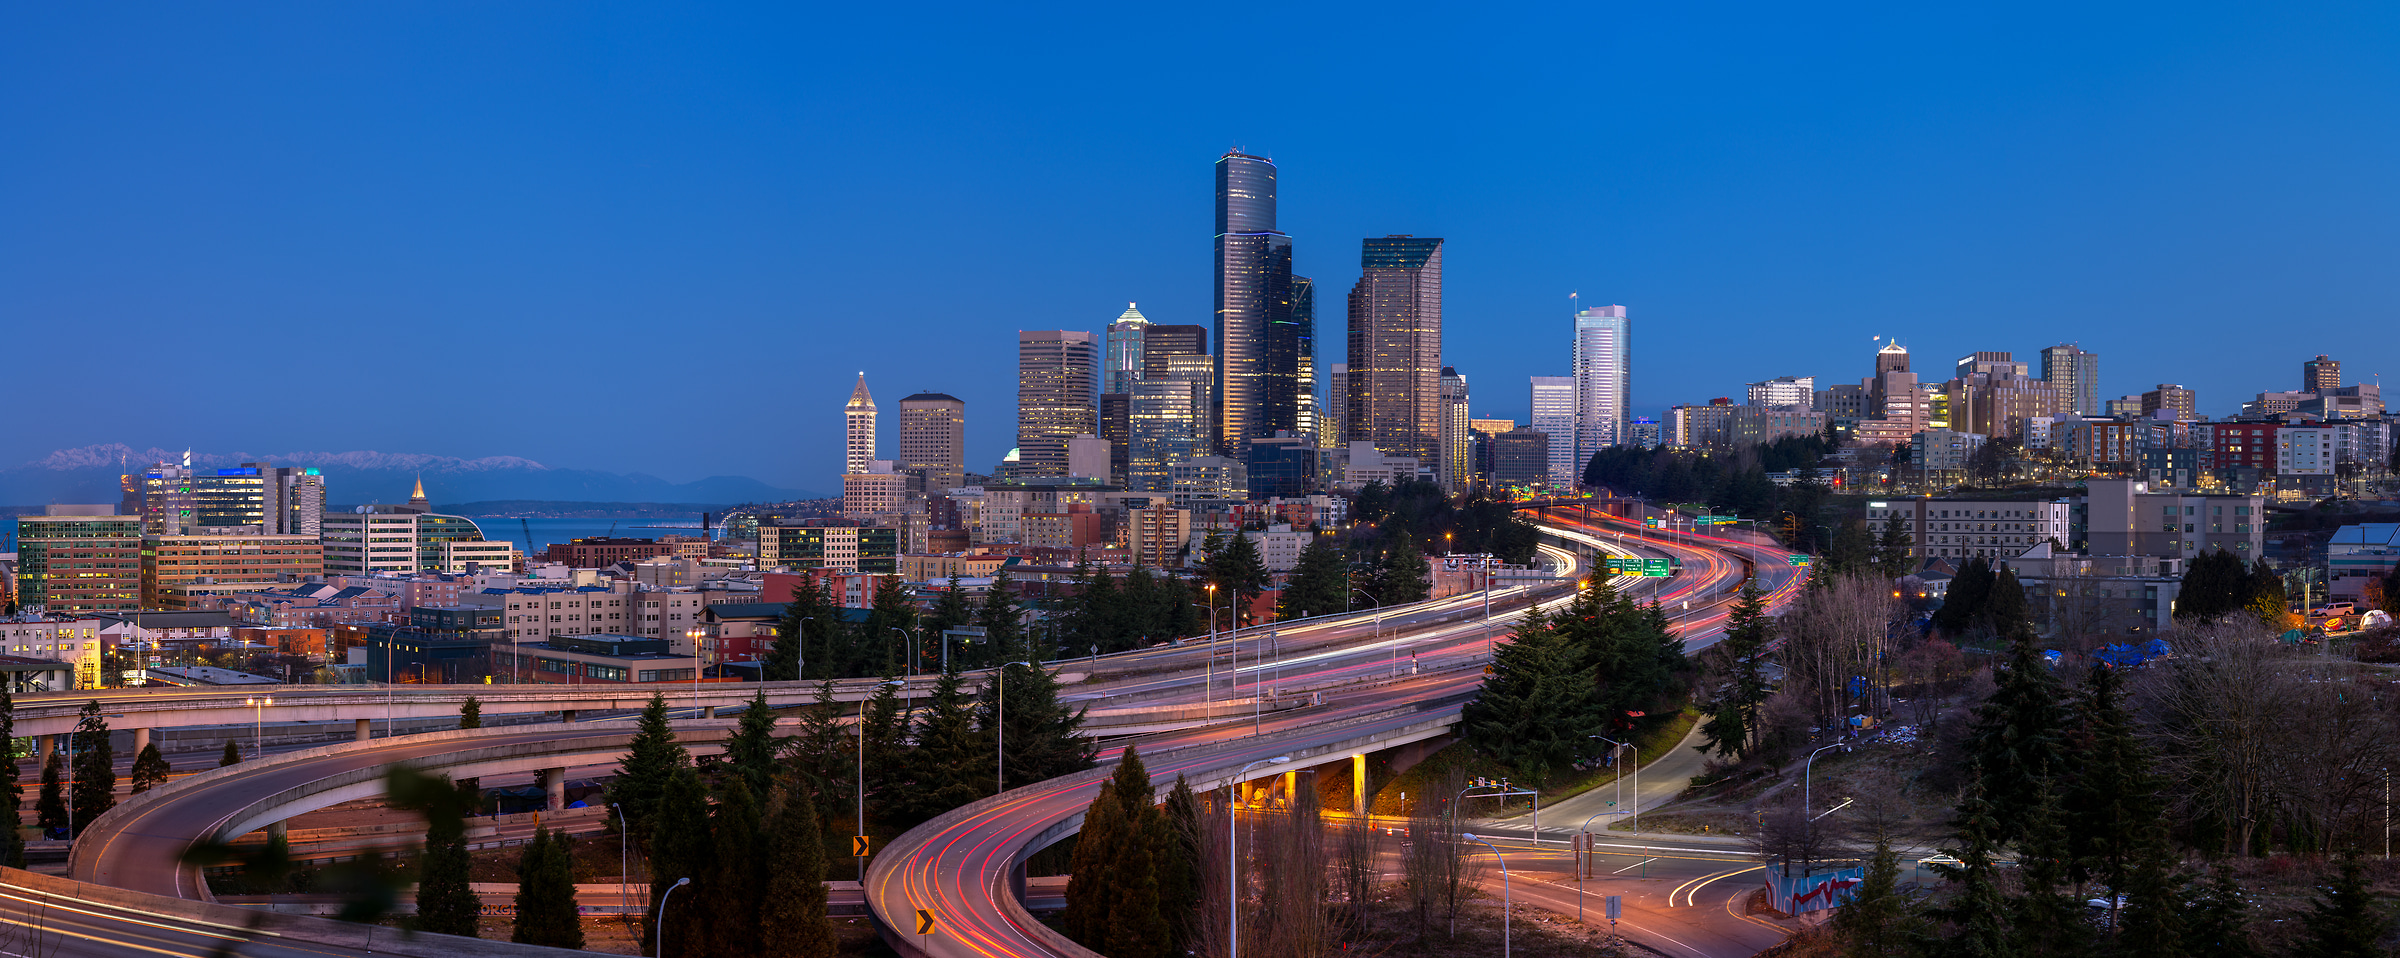 253 megapixels! A very high resolution, large-format VAST photo print of the Seattle skyline in the morning with highways in the foreground; photograph created by Greg Probst in Seattle, Washington